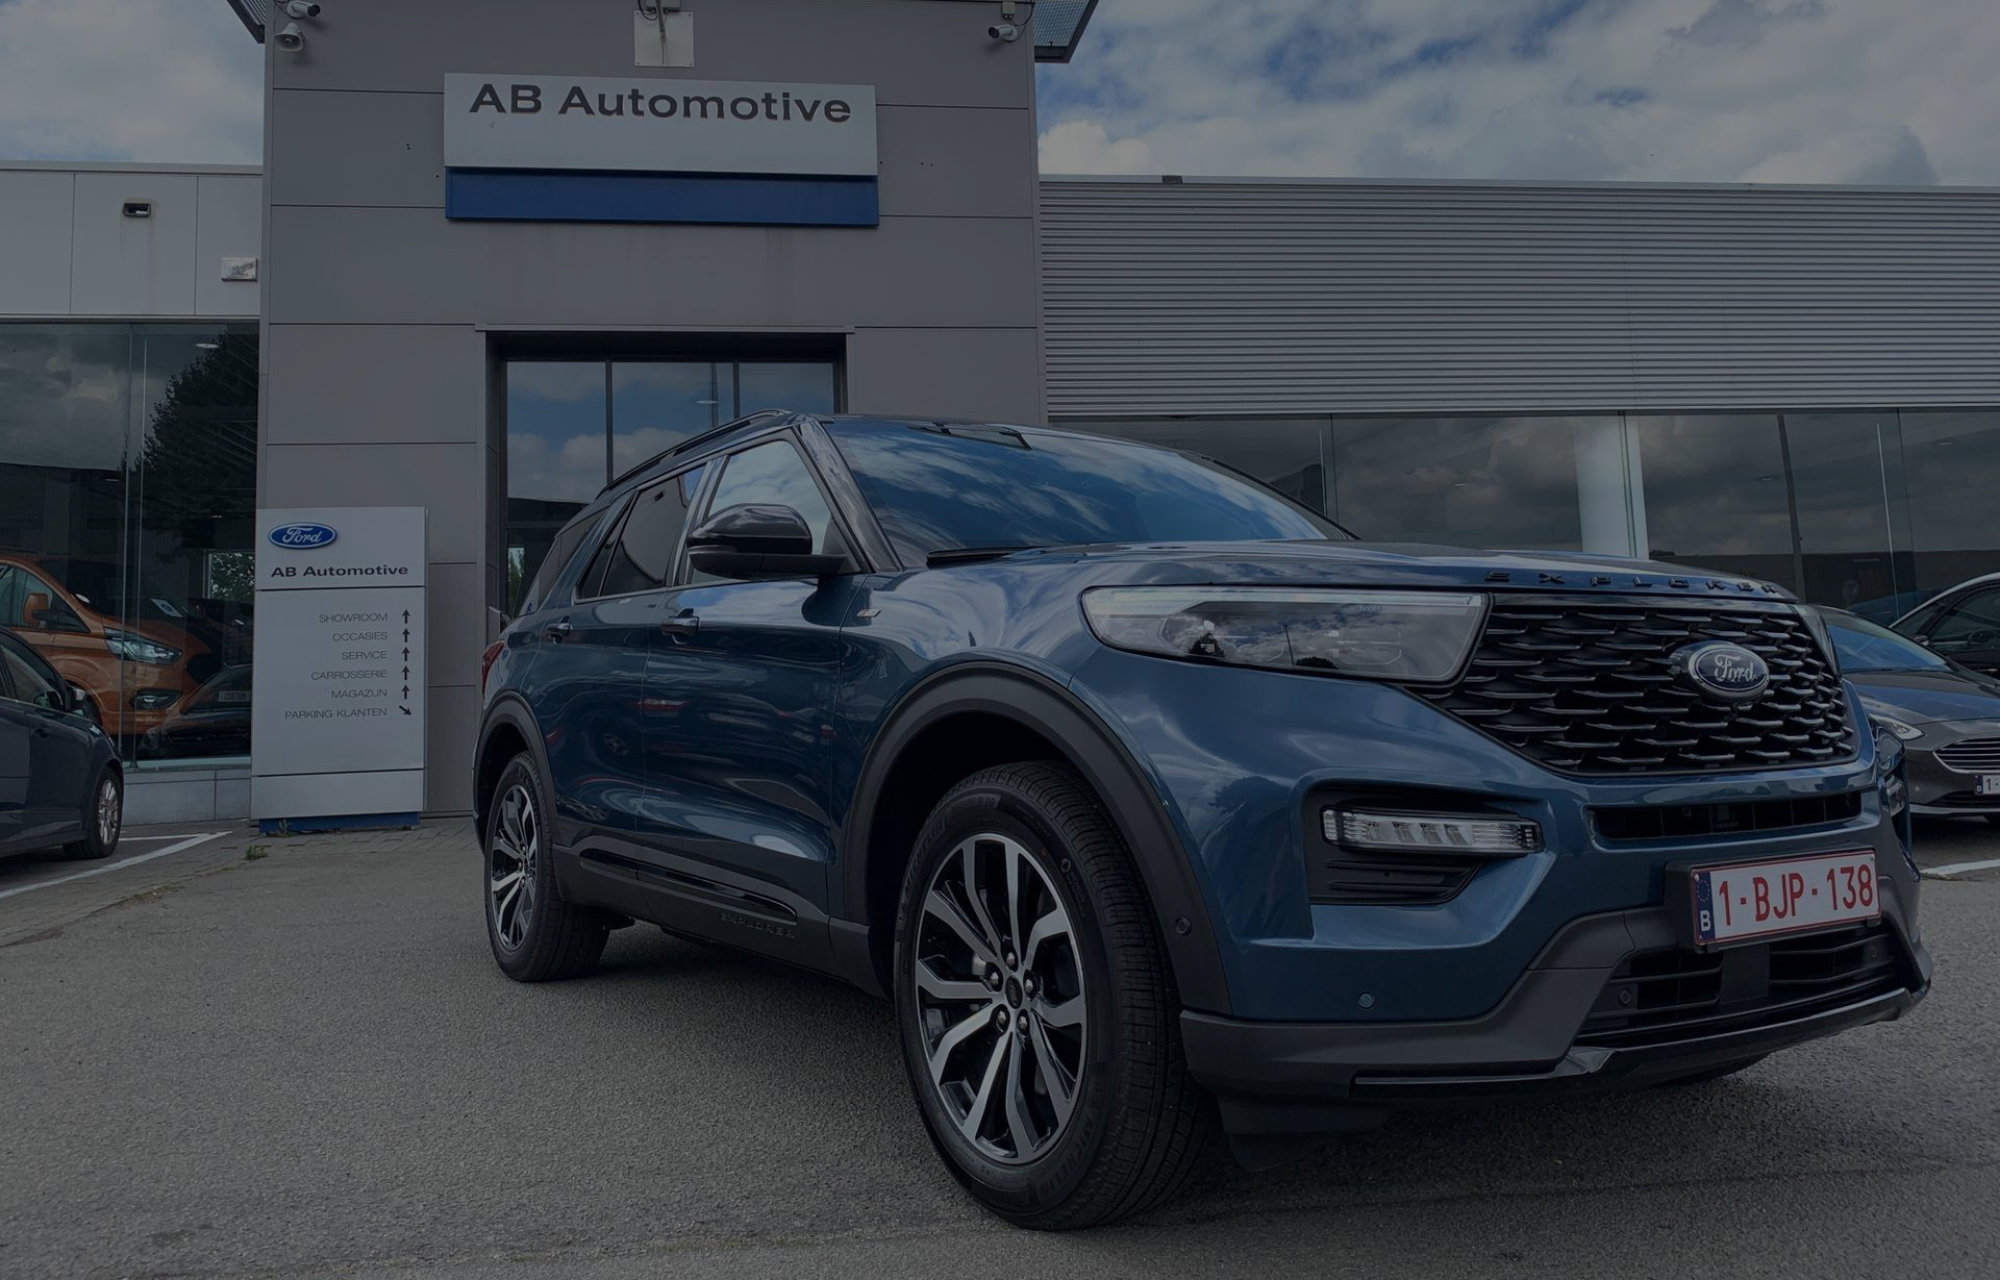 FordStore AB Automotive Brussel